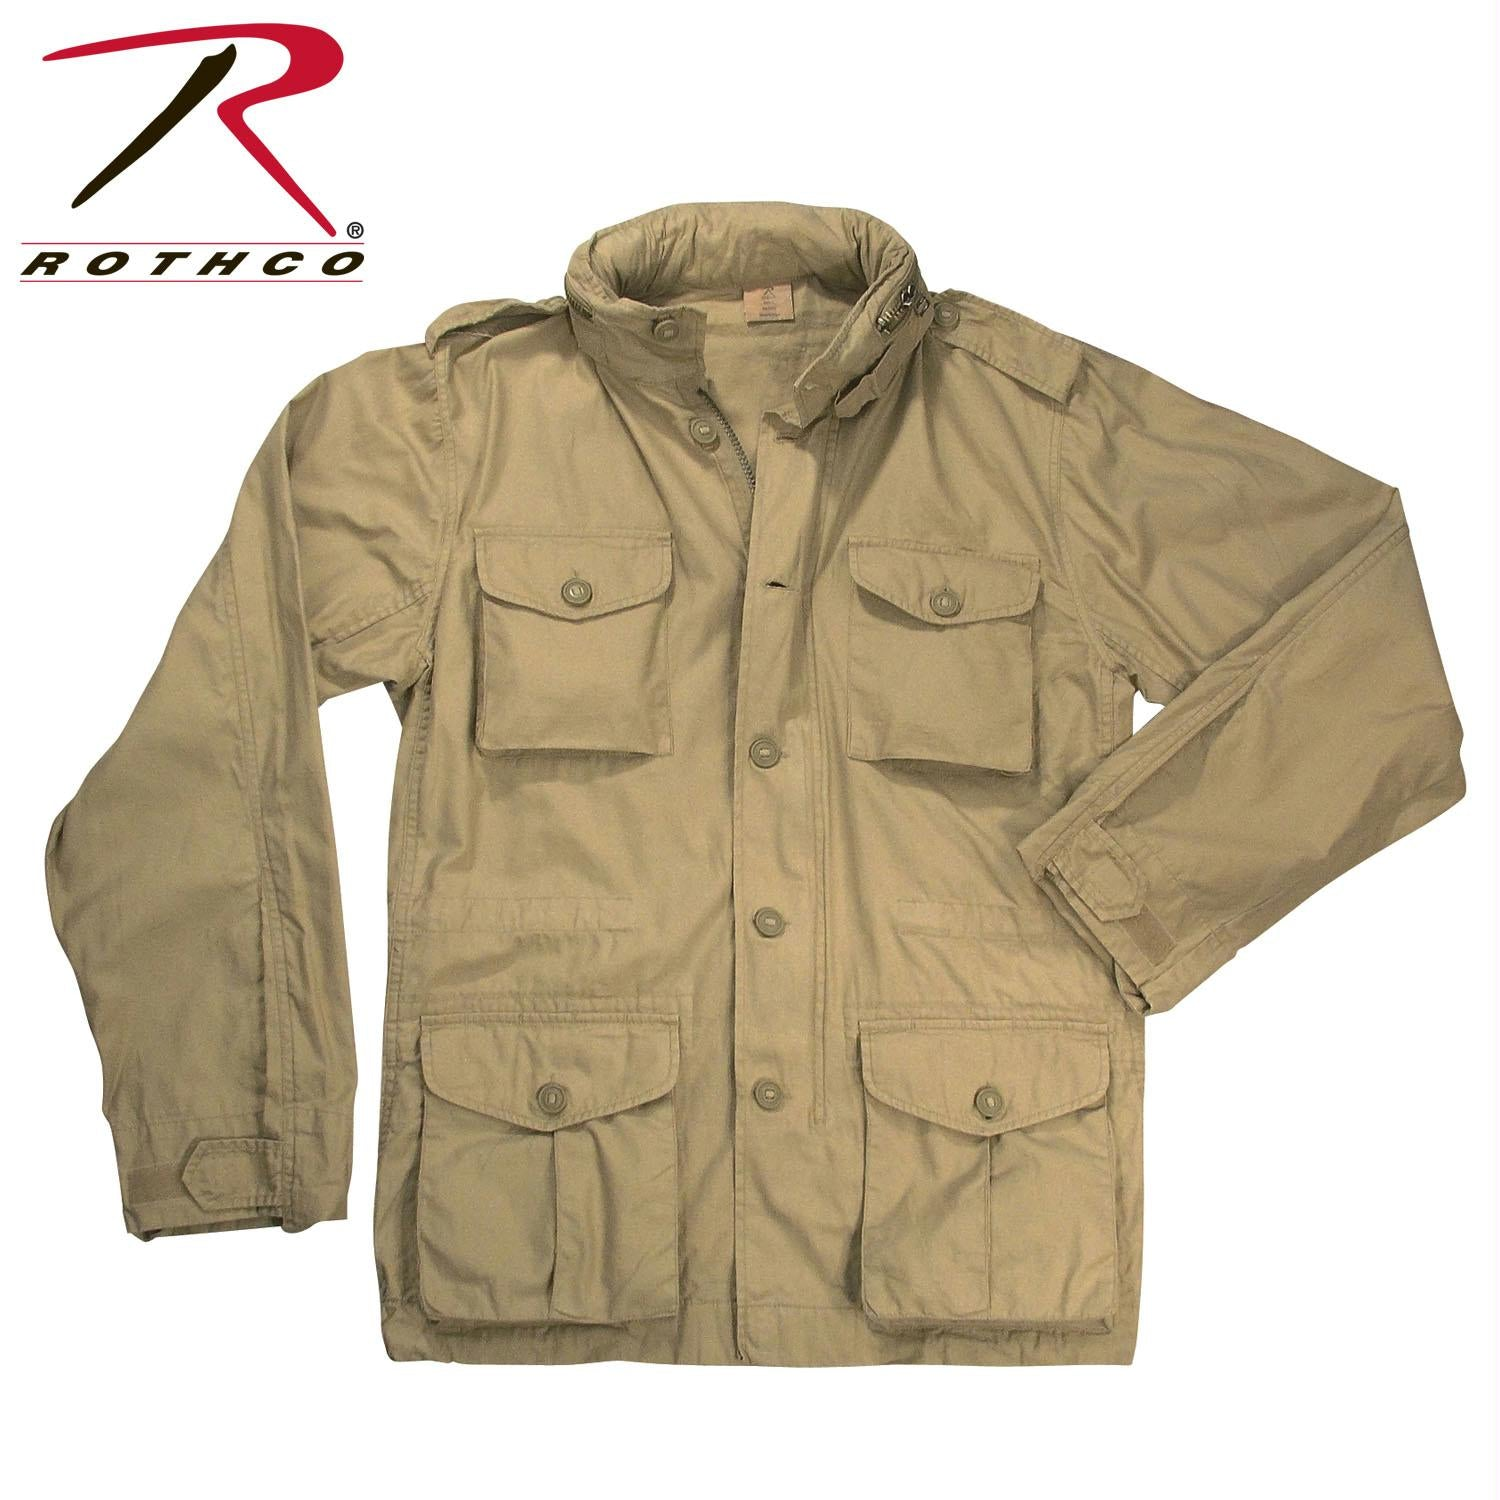 Rothco Vintage Lightweight M-65 Field Jacket - Khaki / XS